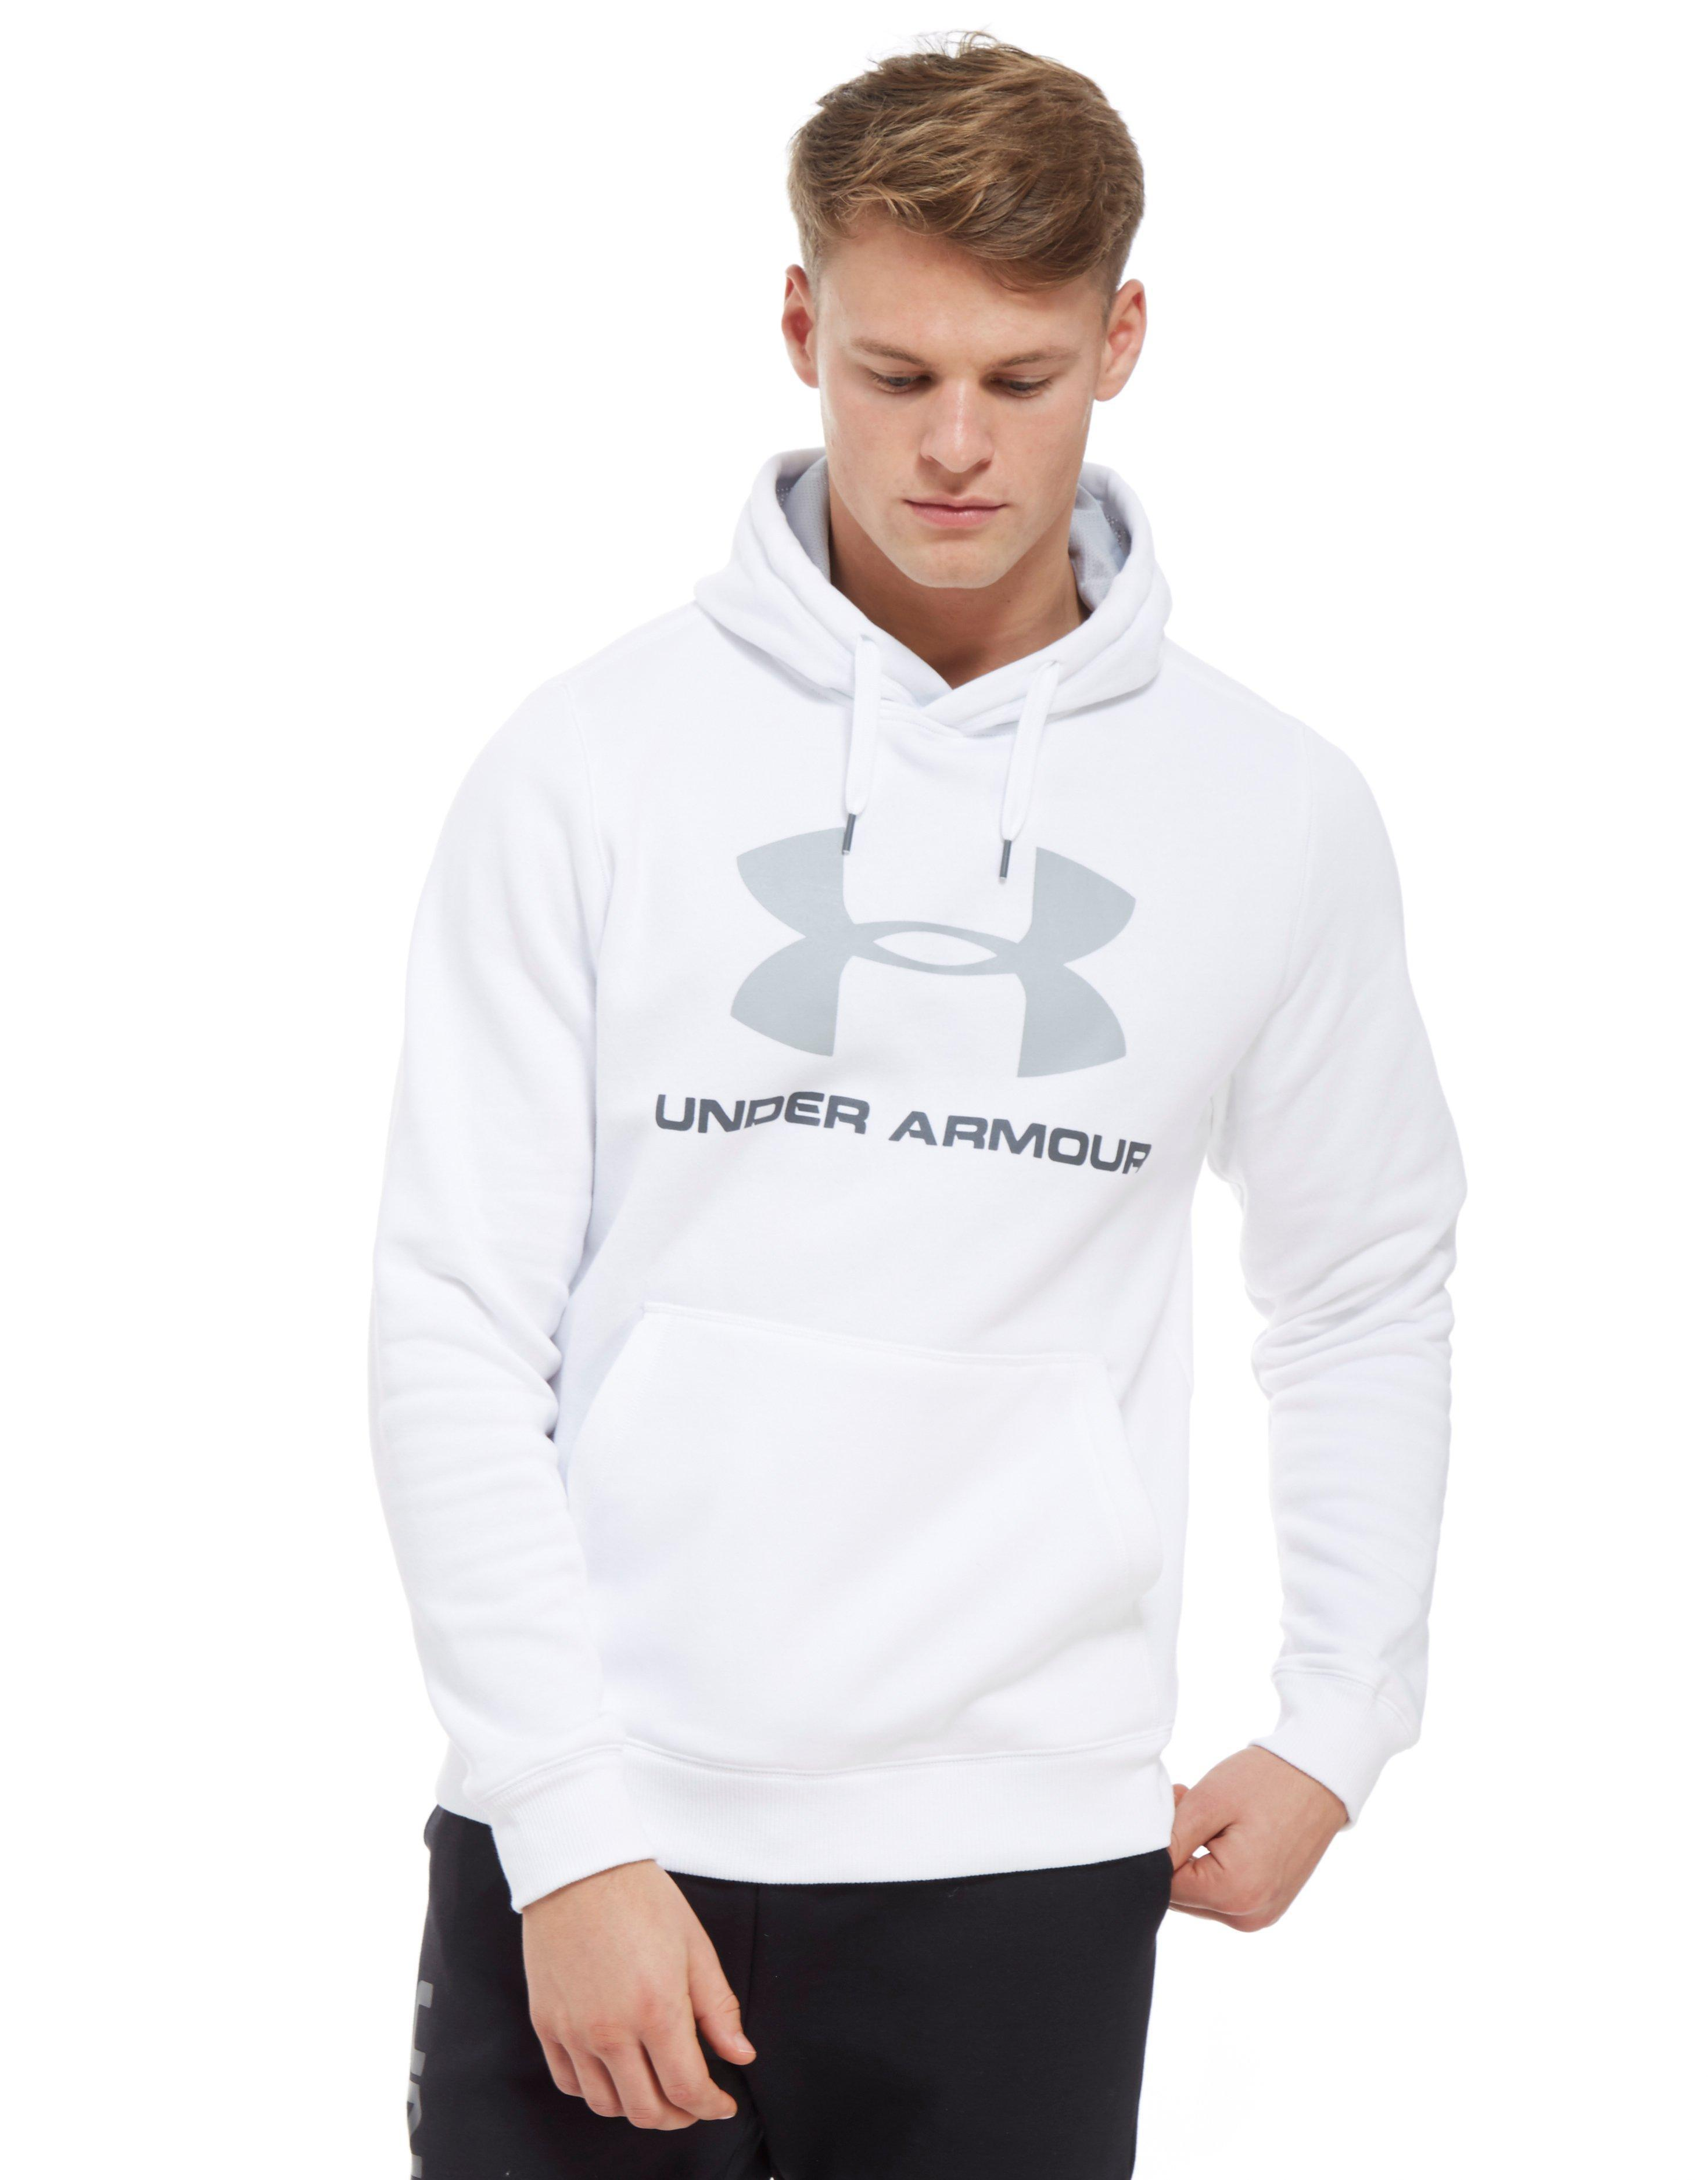 a383fd07a Under Armour Rival Fleece Graphic Hoodie in White for Men - Lyst